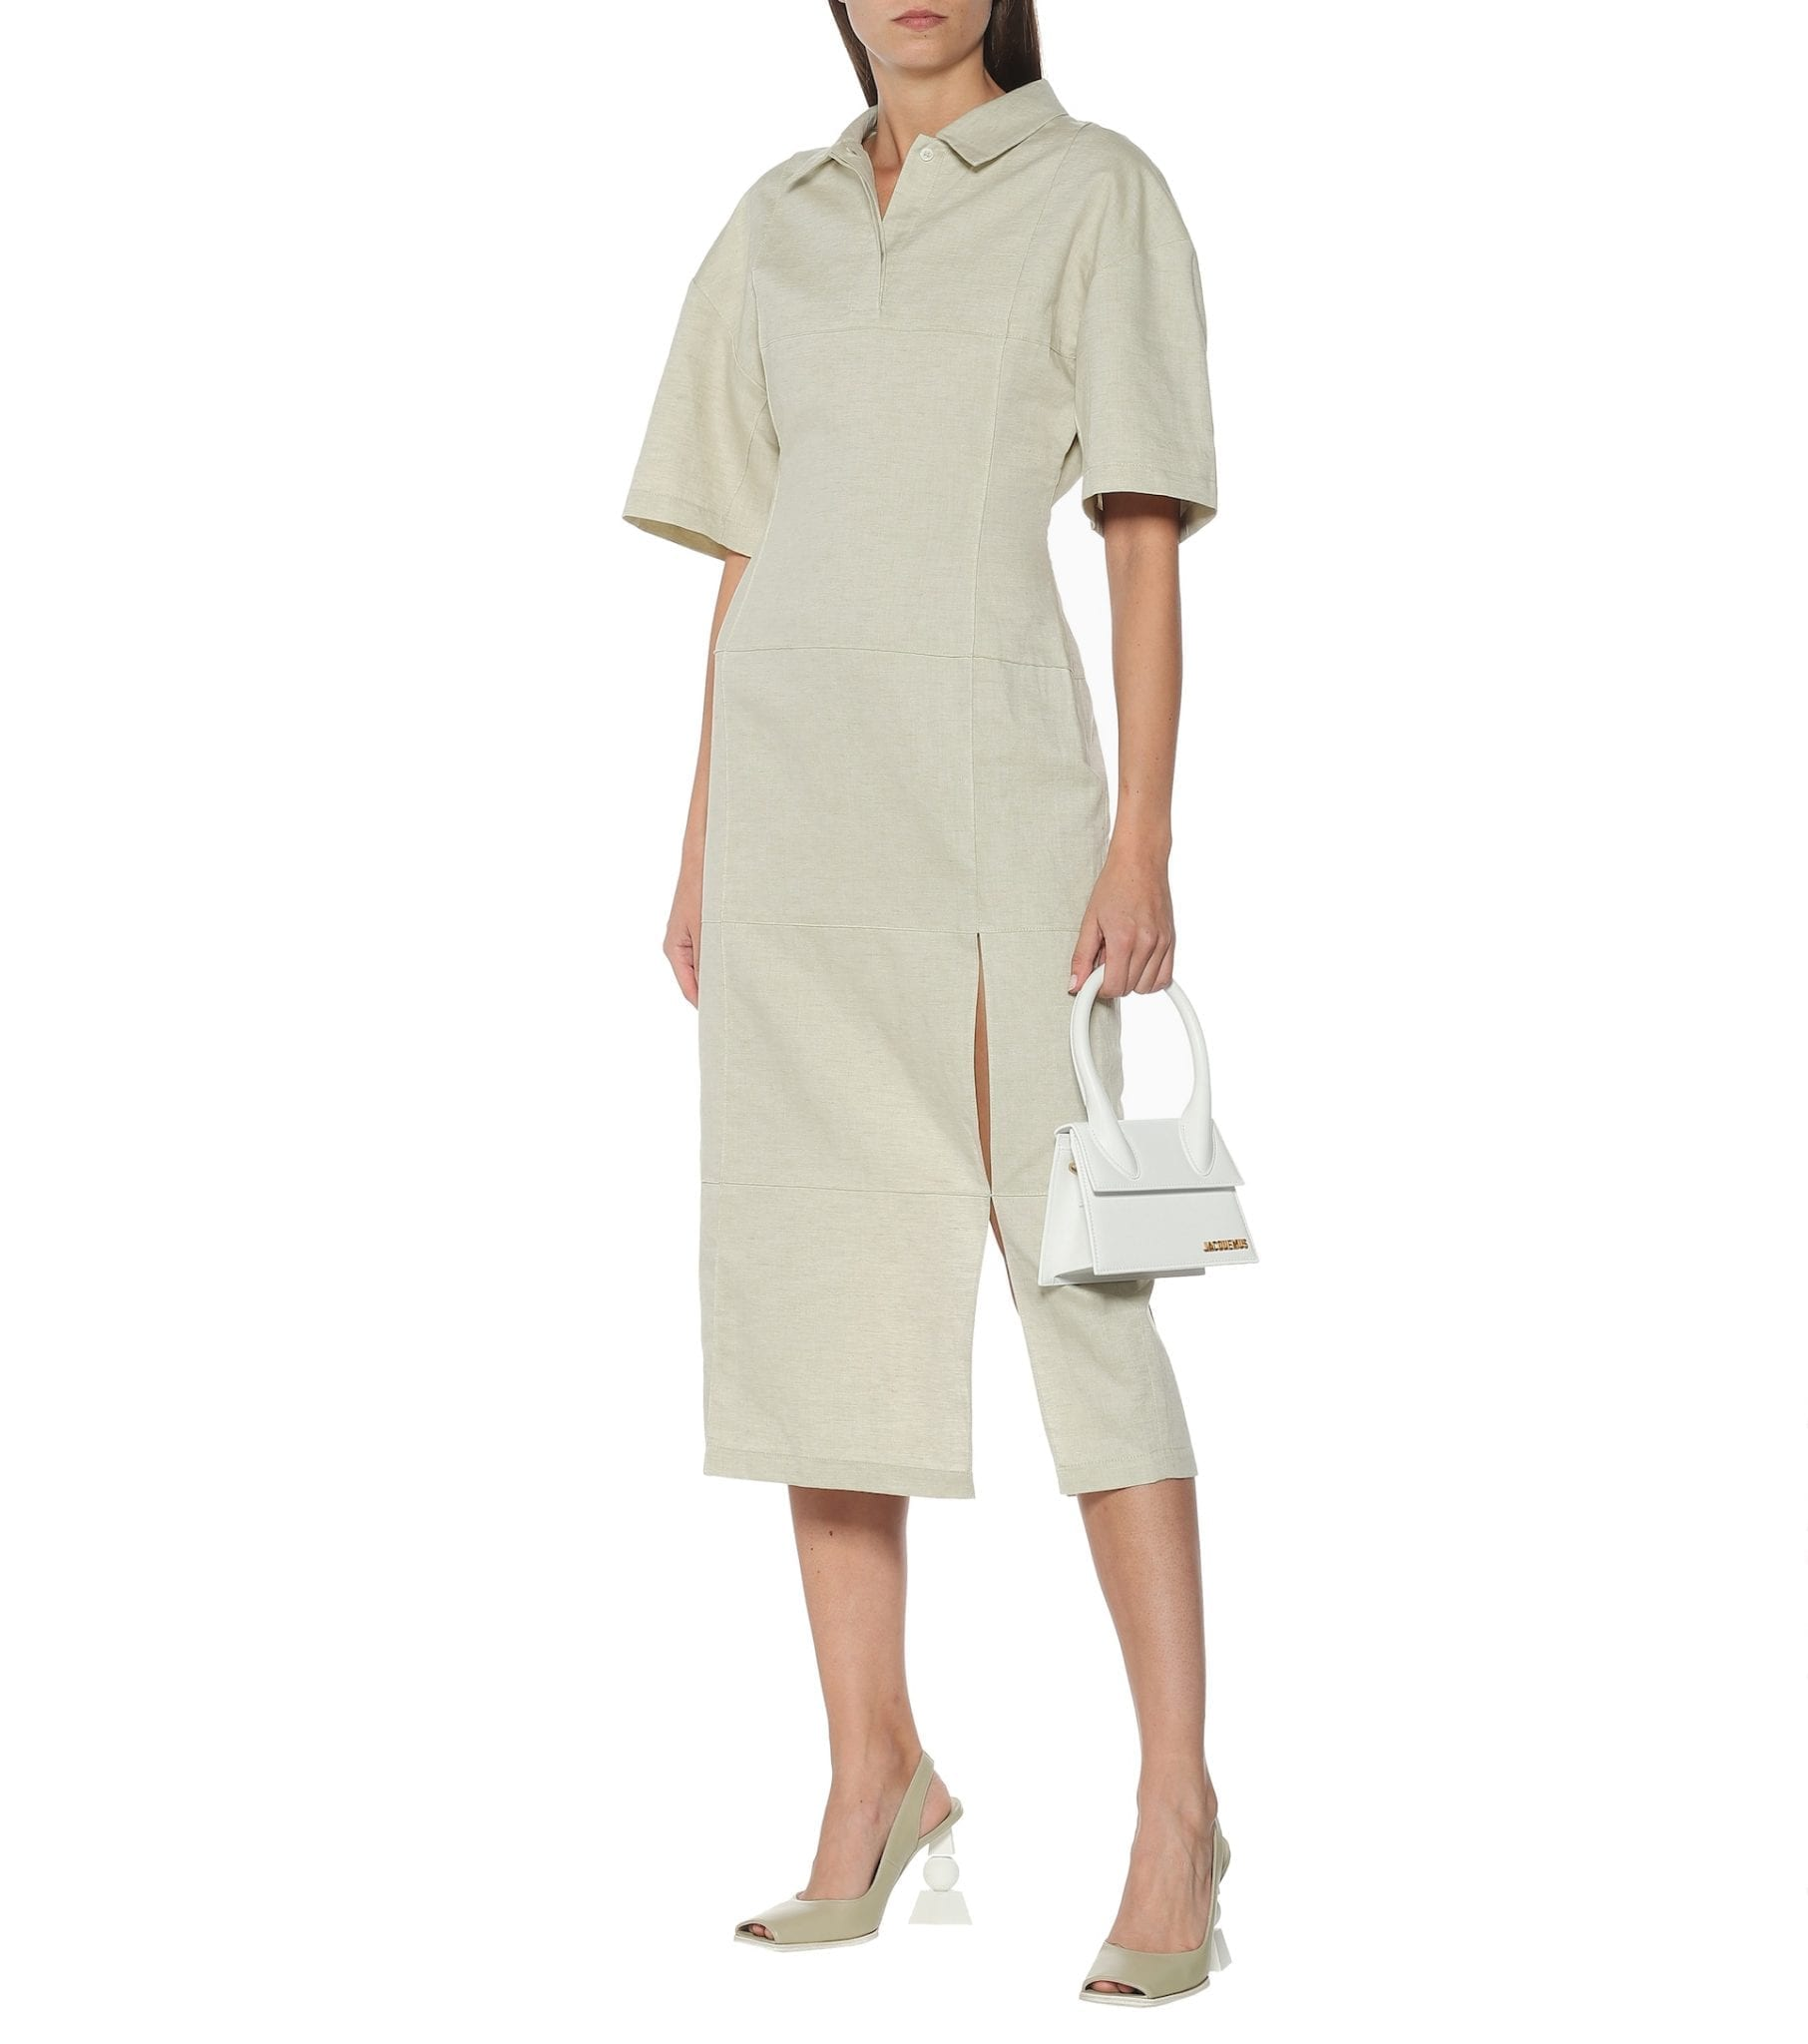 JACQUEMUS Carro Cotton And Linen Midi Dress